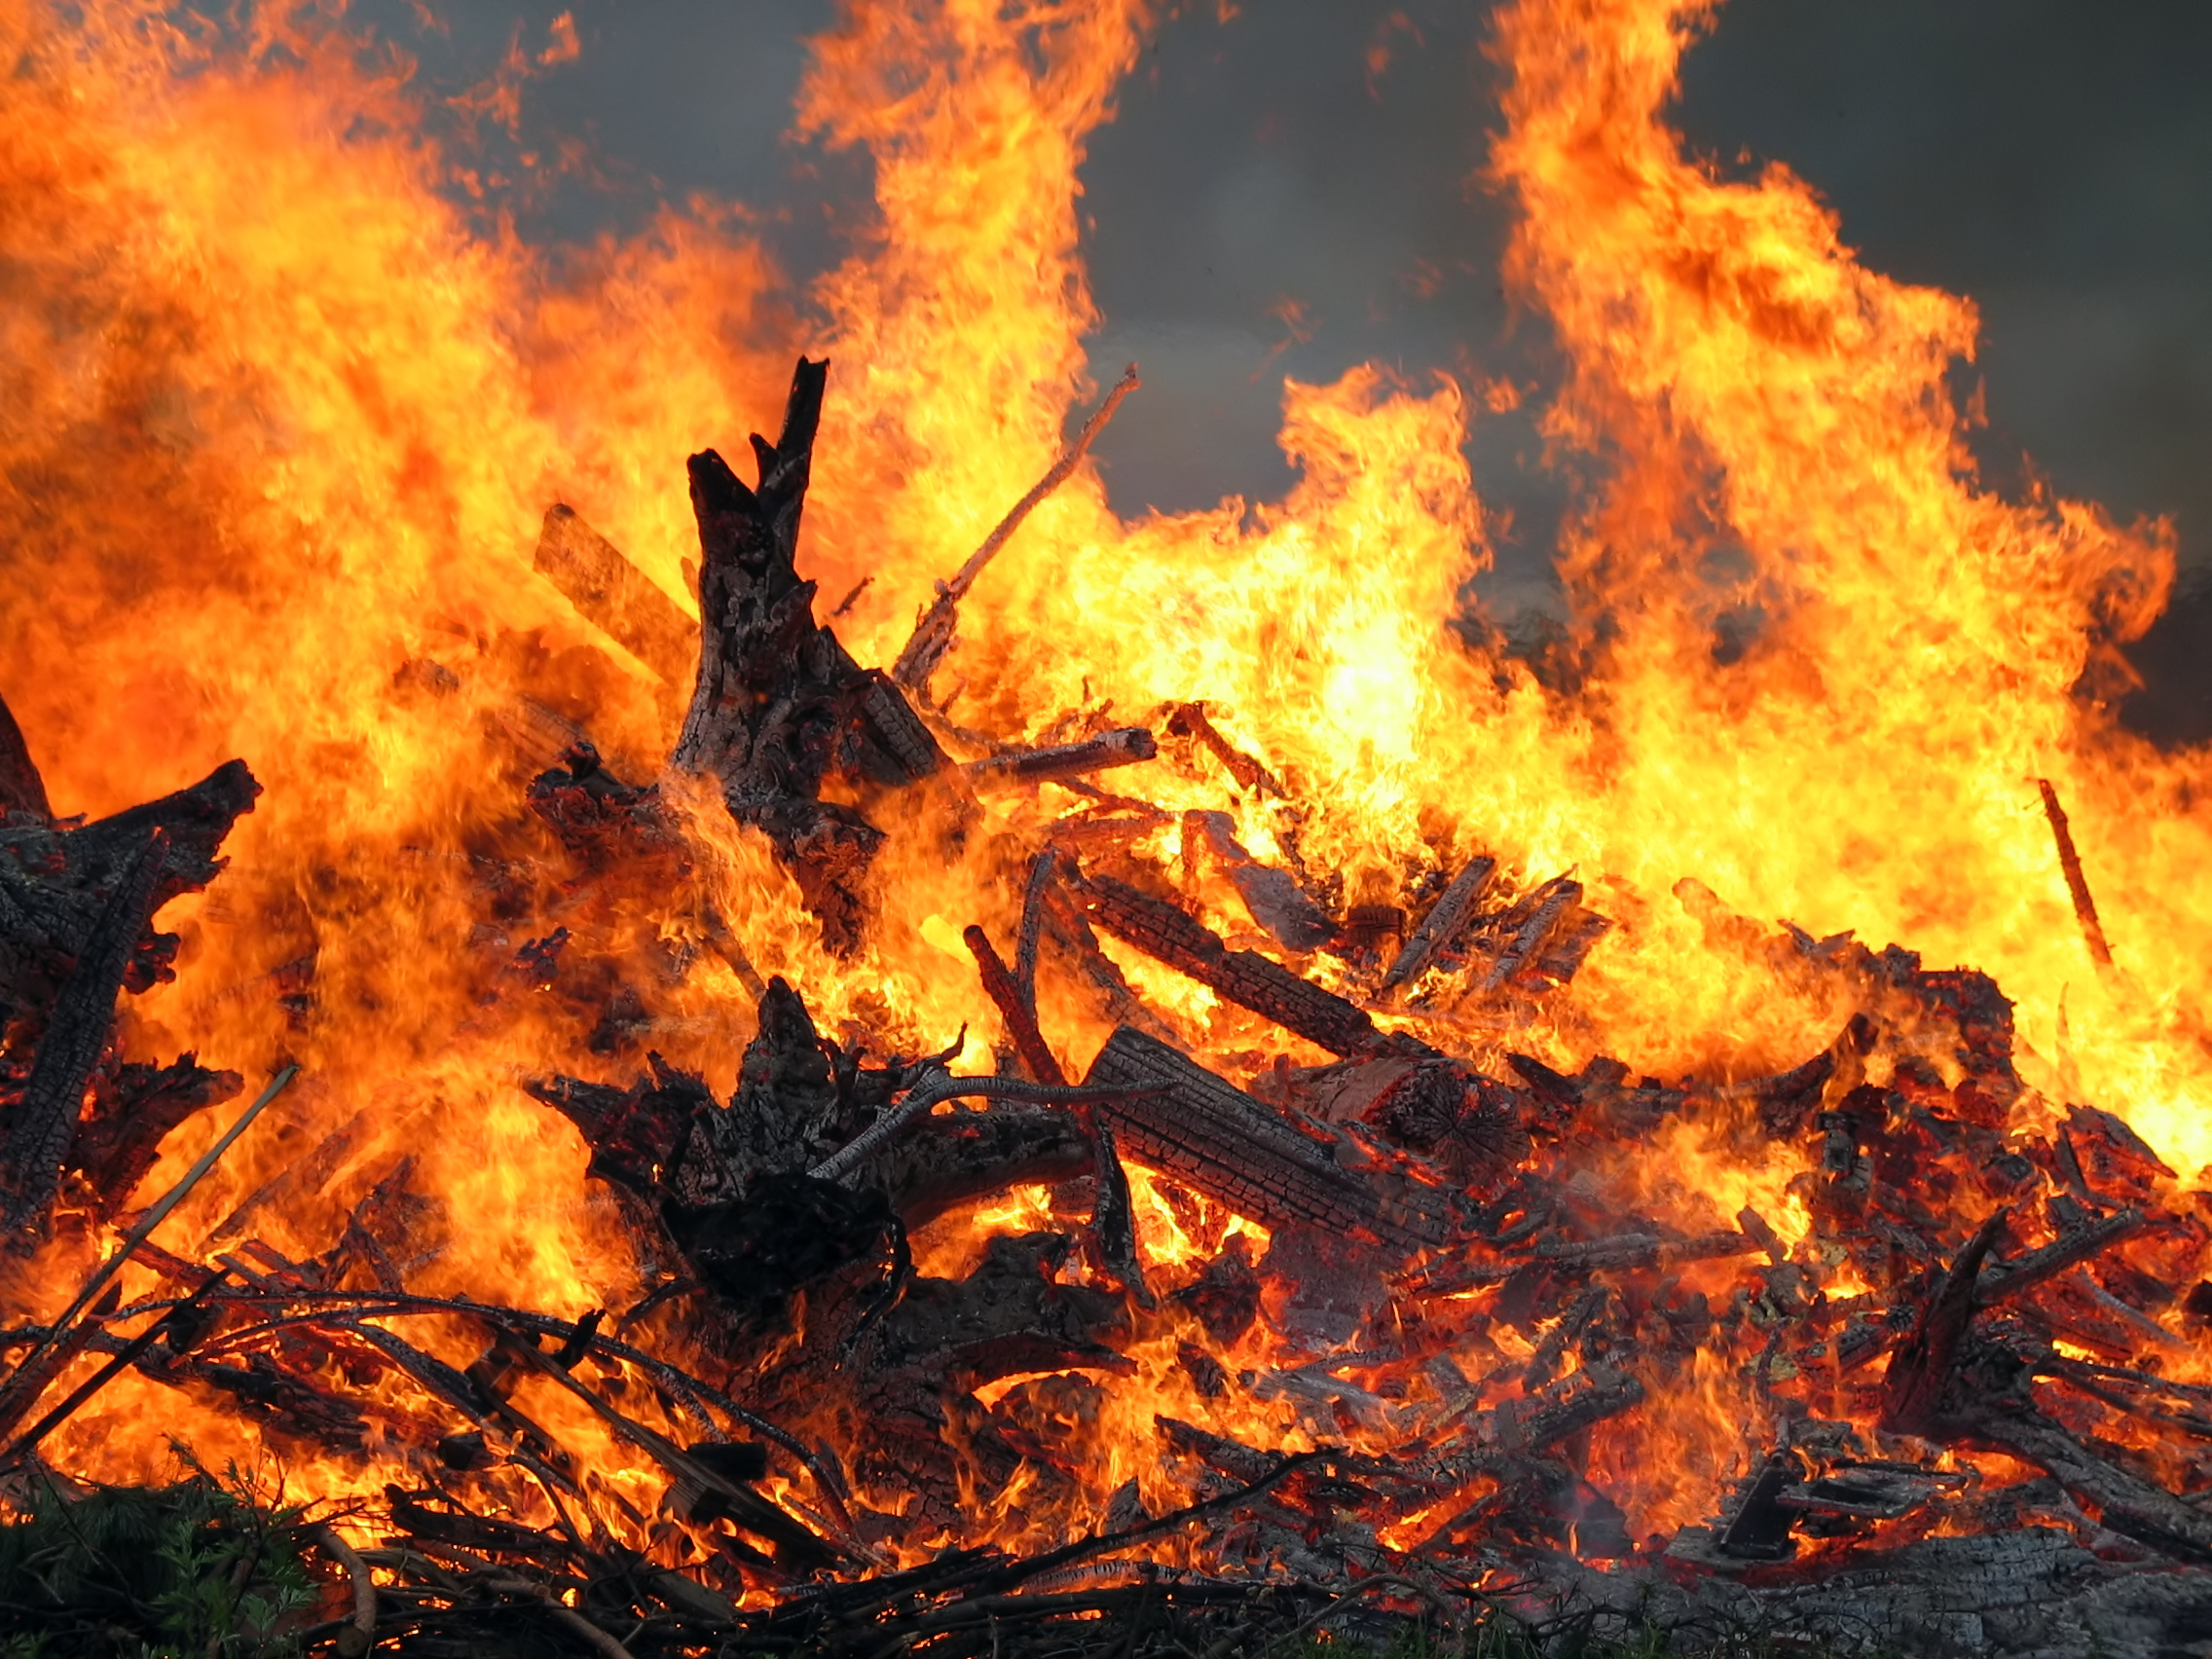 Midsummer_bonfire_closeup.jpg